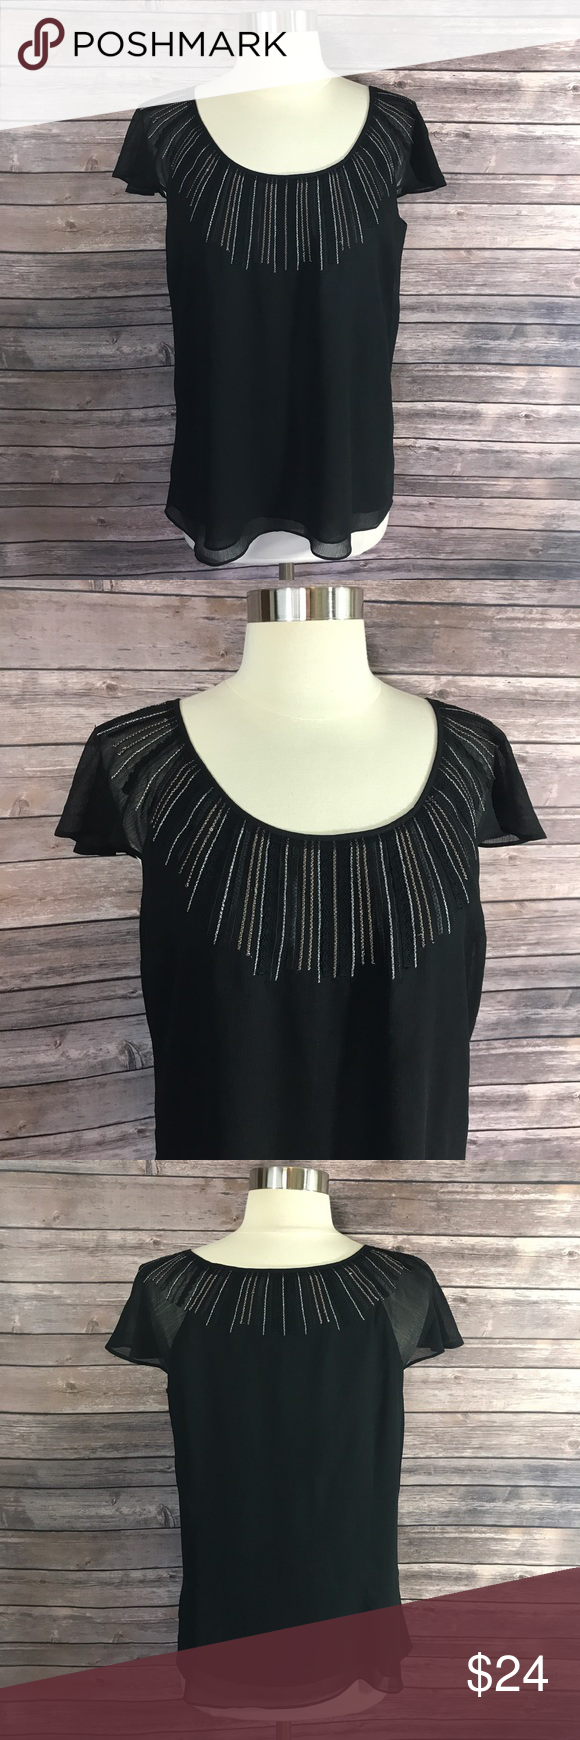 WHBM Top Med Black Silver Gold Embroidered Blouse White House Black Market Top Size Medium Black Silver Gold Embroidered Blouse. Measurements: (in inches) Underarm to underarm: 19 Length: 25  Good, gently used condition White House Black Market Tops Blouses